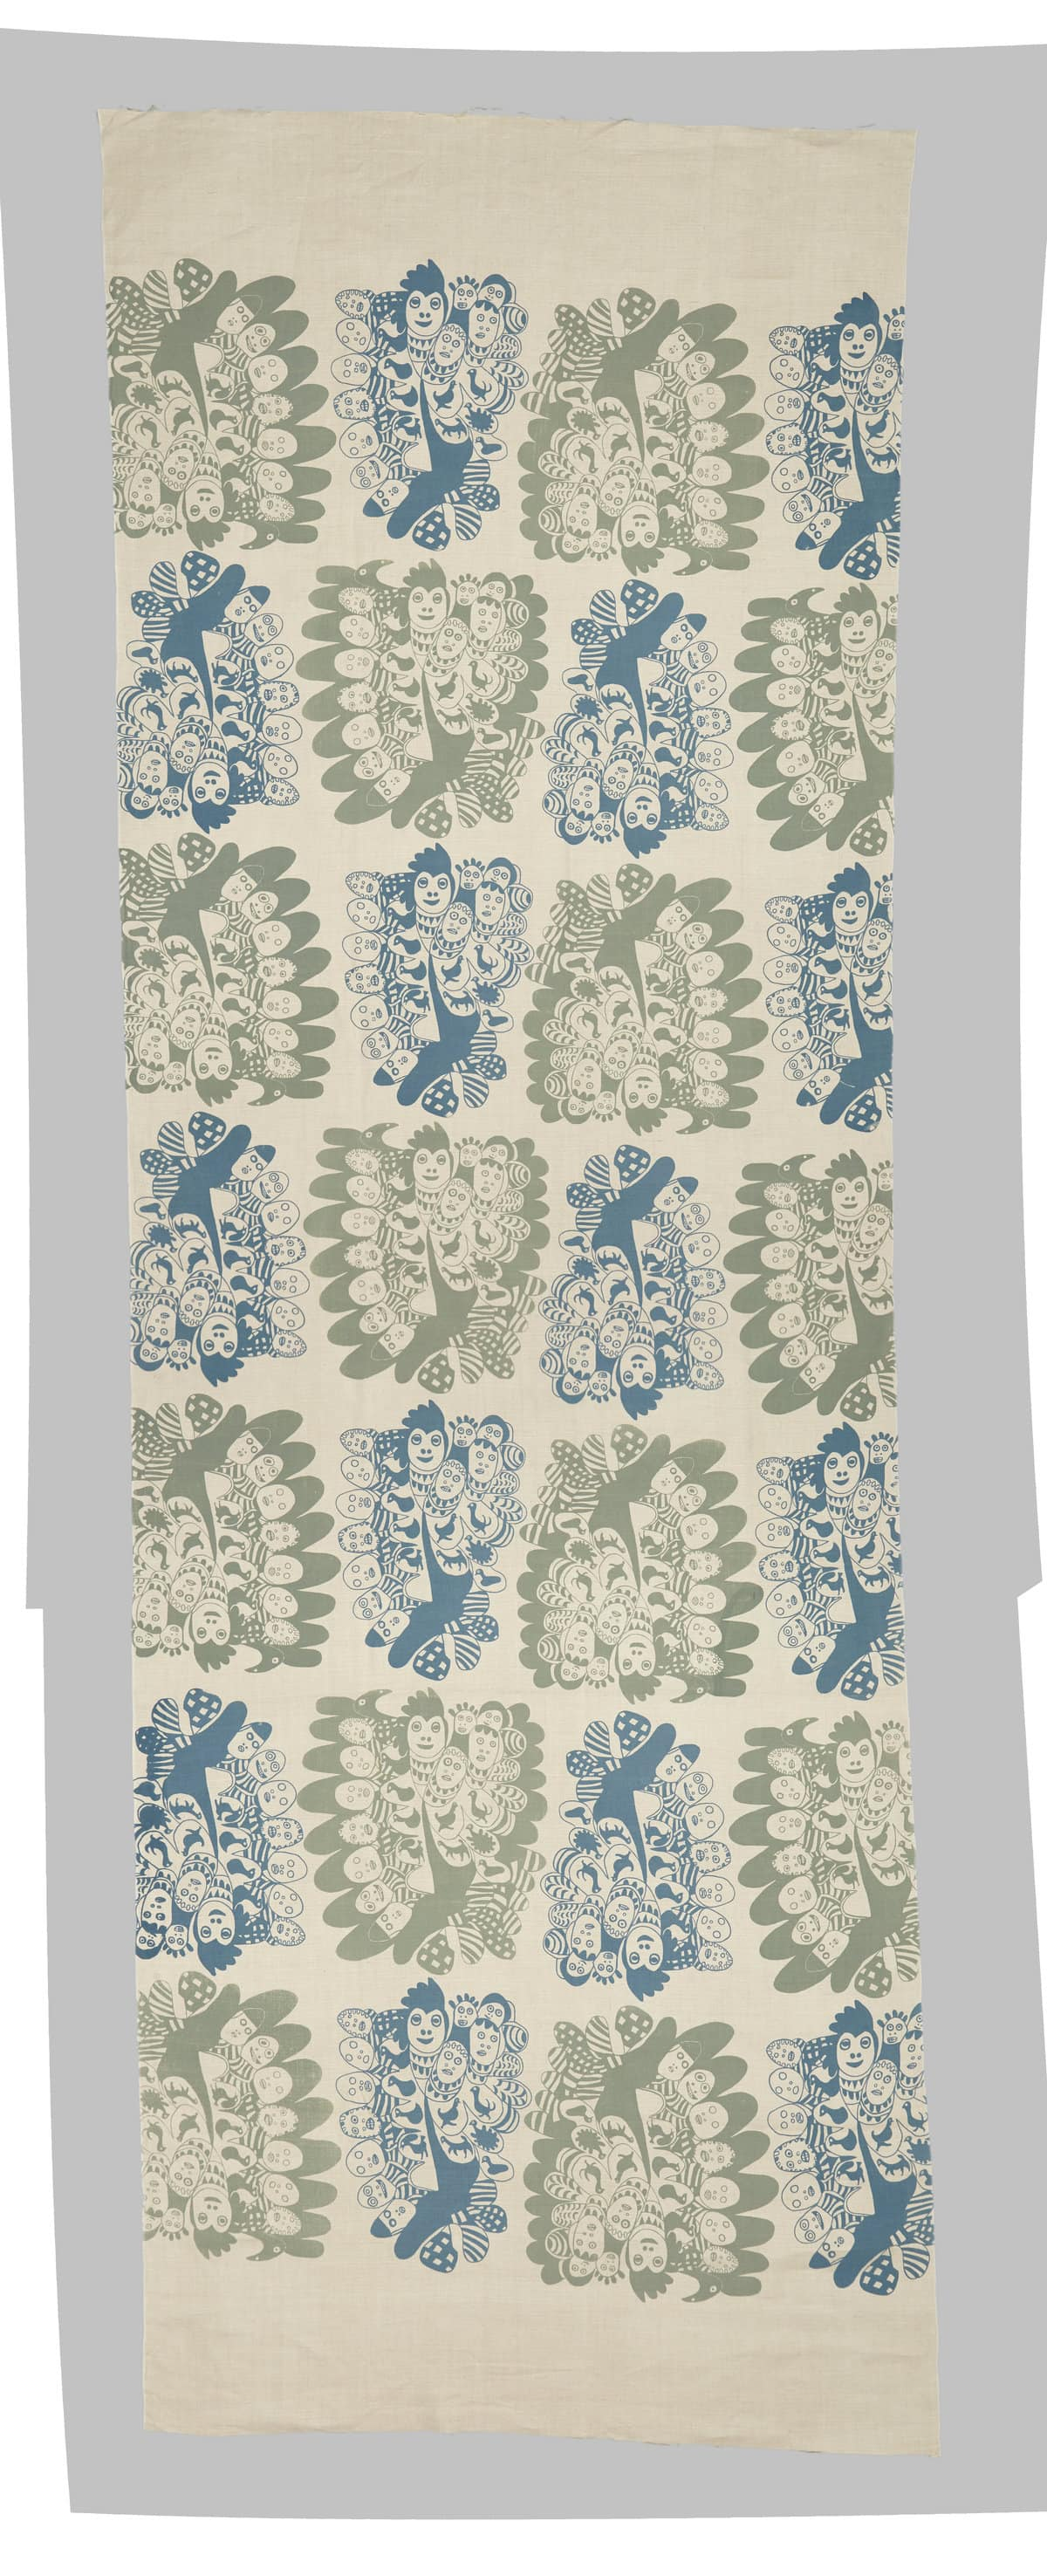 Image description: Artwork of green and blue birds surrounded by faces, printed on a cream-coloured fabric.